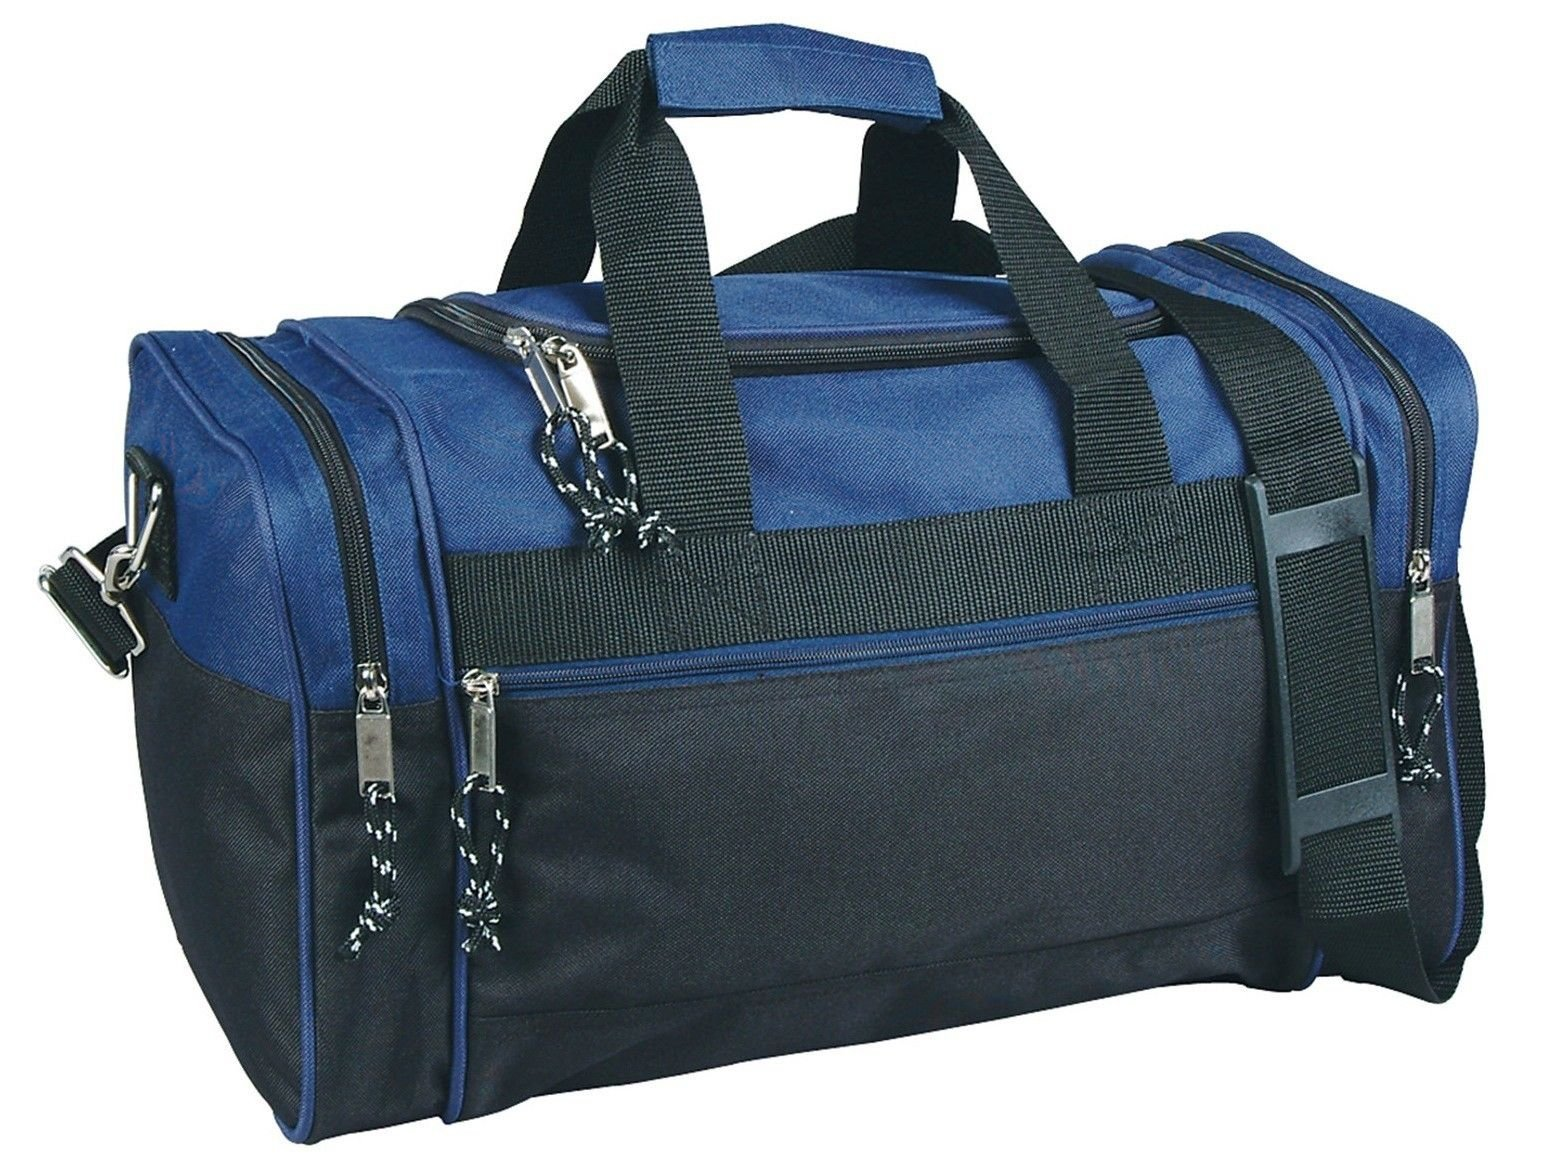 17'' Blank Duffle Bag Duffel Travel Camping Outdoor Sports Gym Accessories Bag (17'' - Navy)